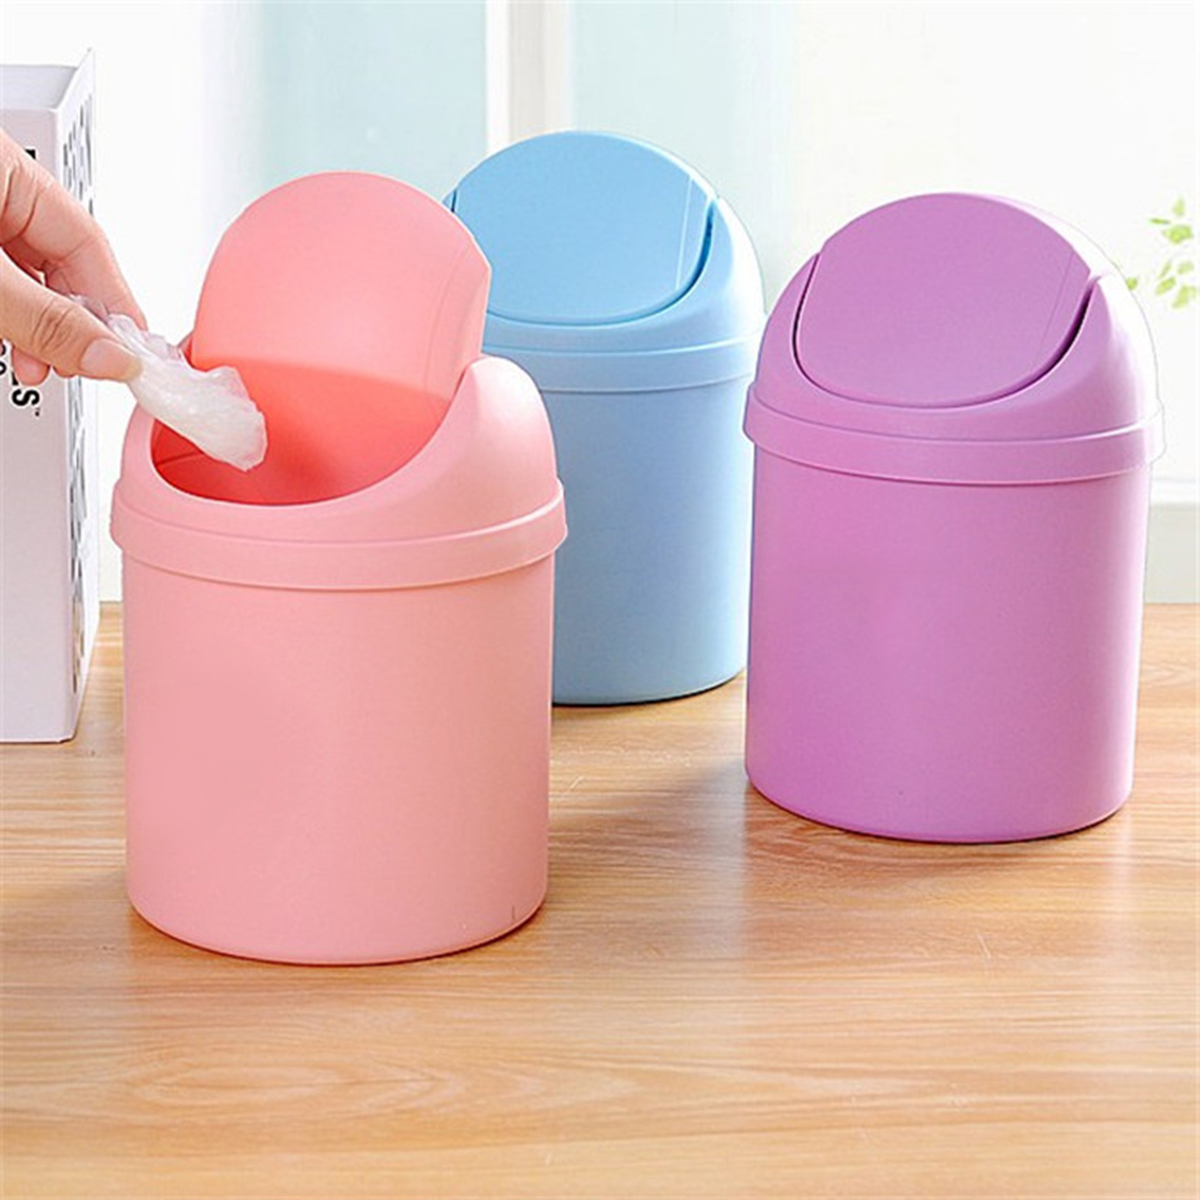 Mini Trash Can ,Touch Top Waste Bin,Cute Mini Small Waste Bin, Desktop